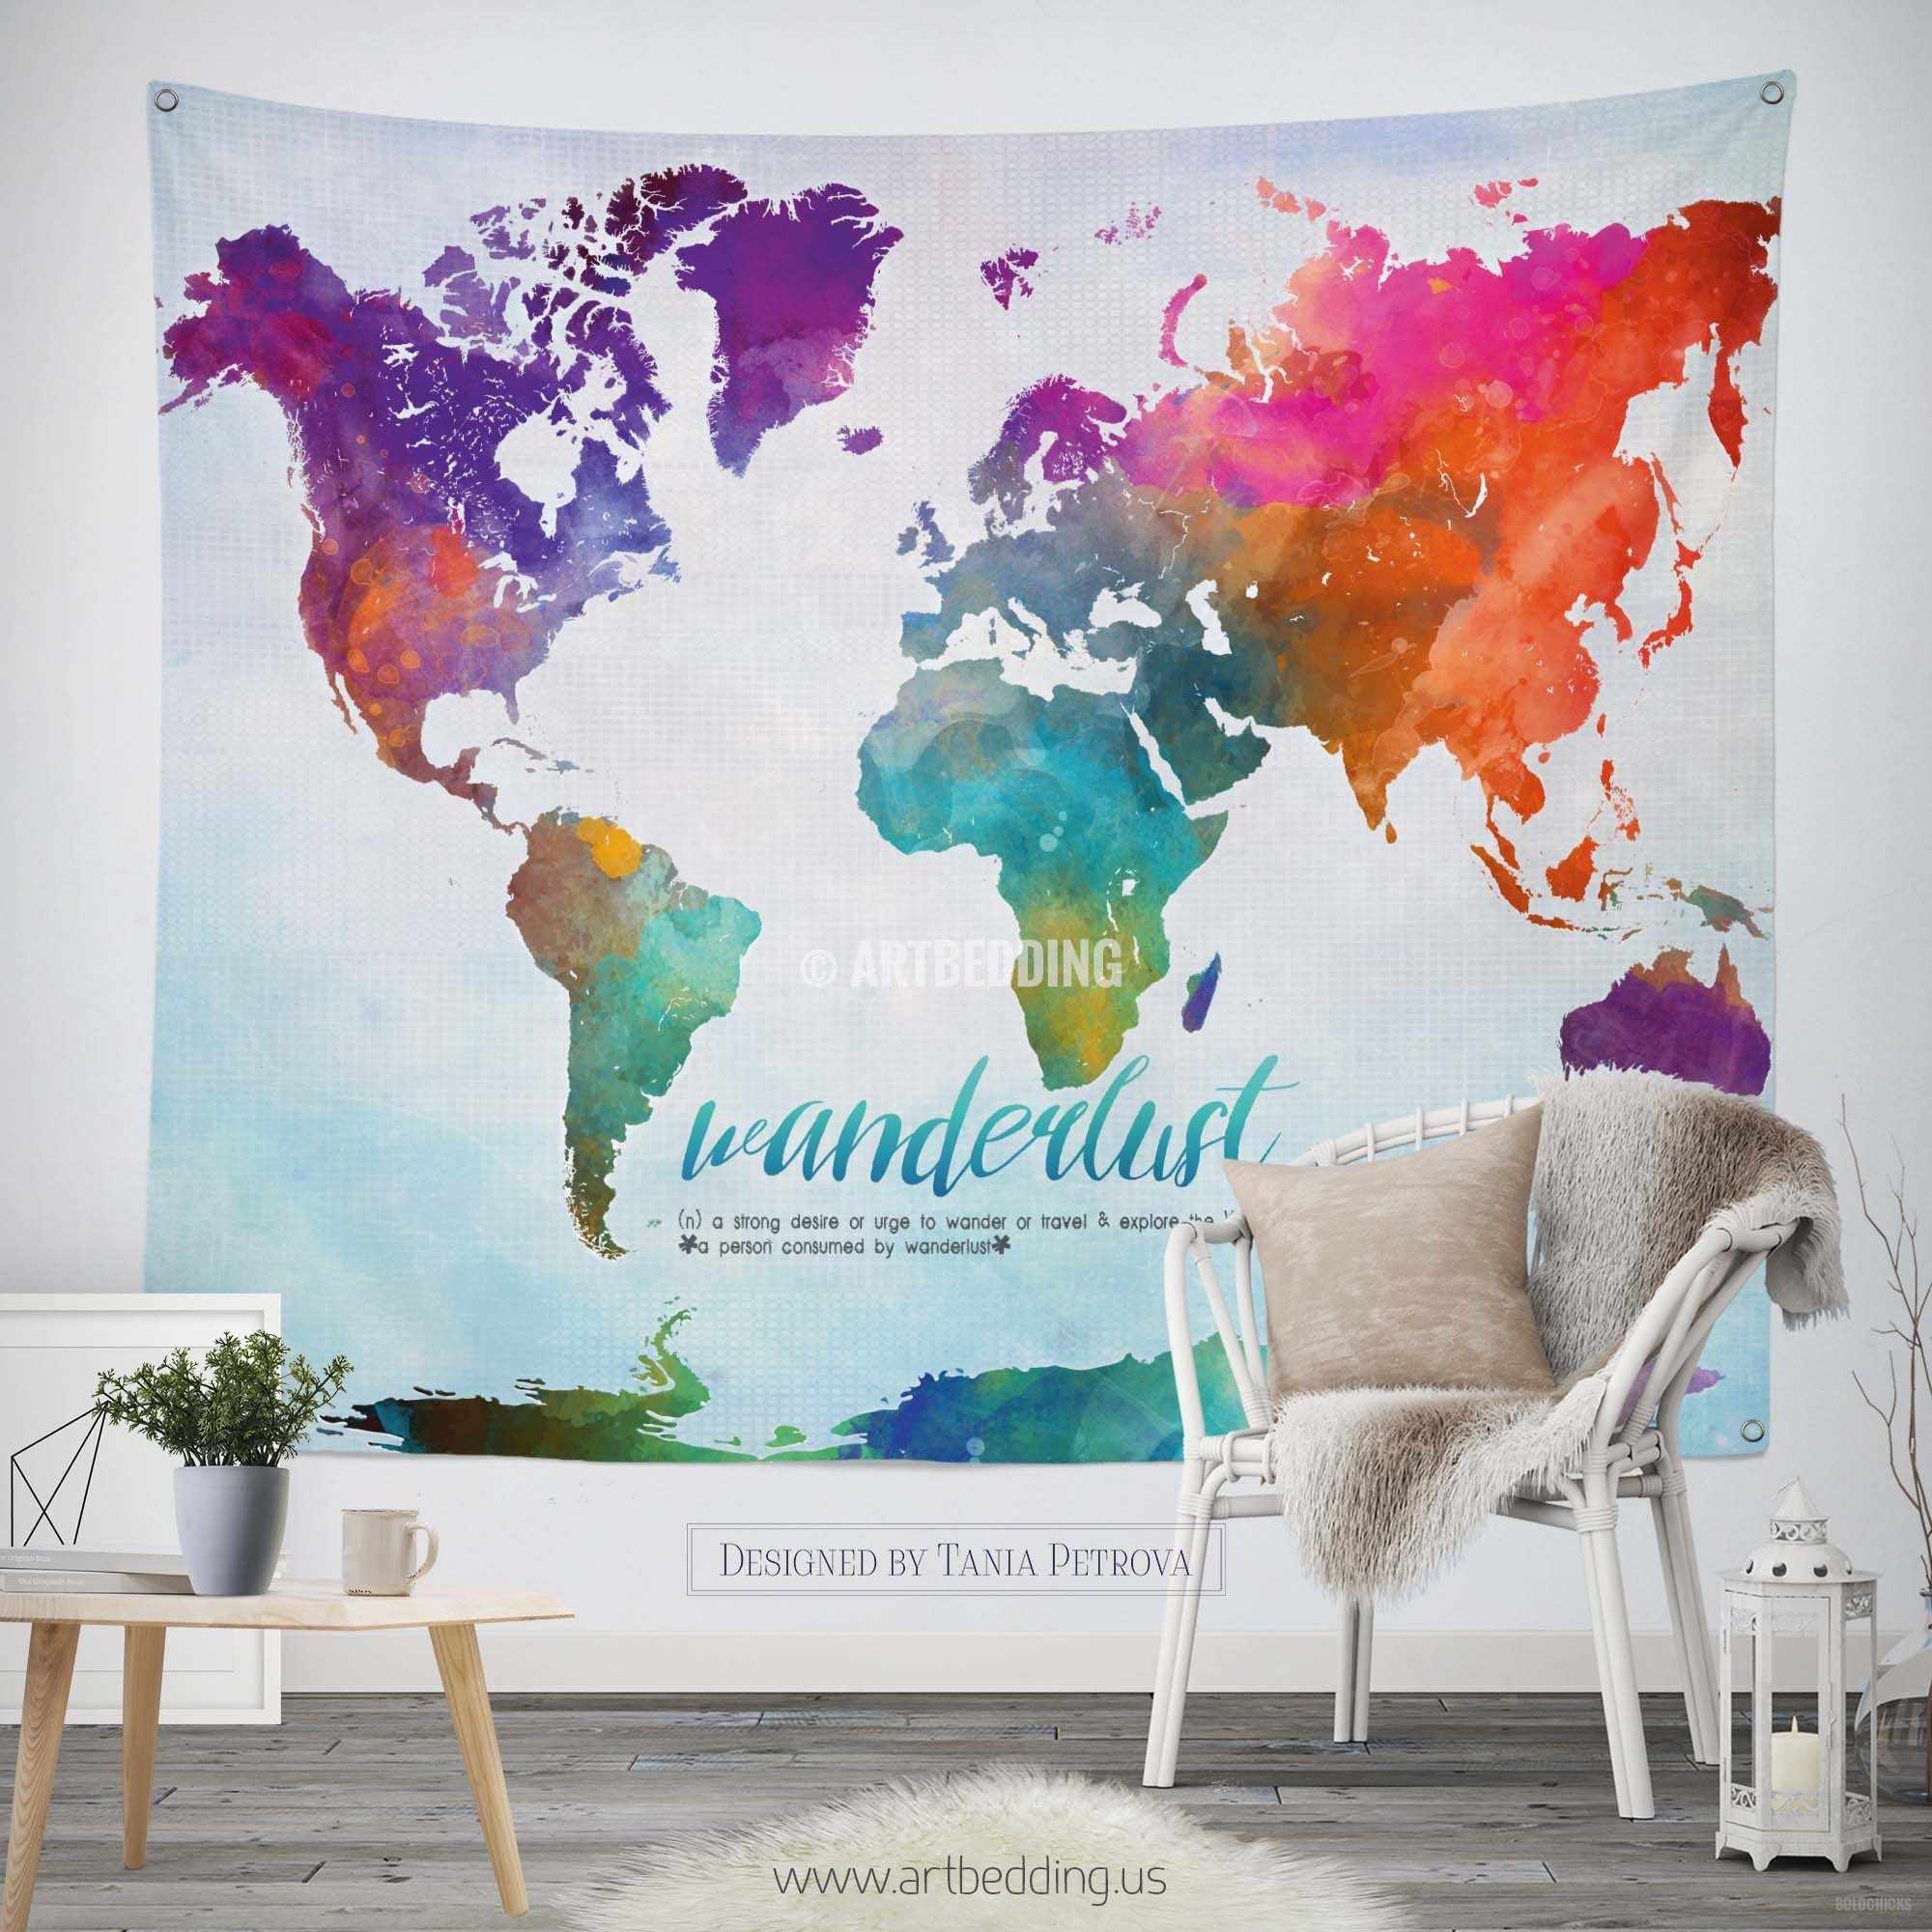 World map abstract watercolor wall Tapestry, Grunge world map wall